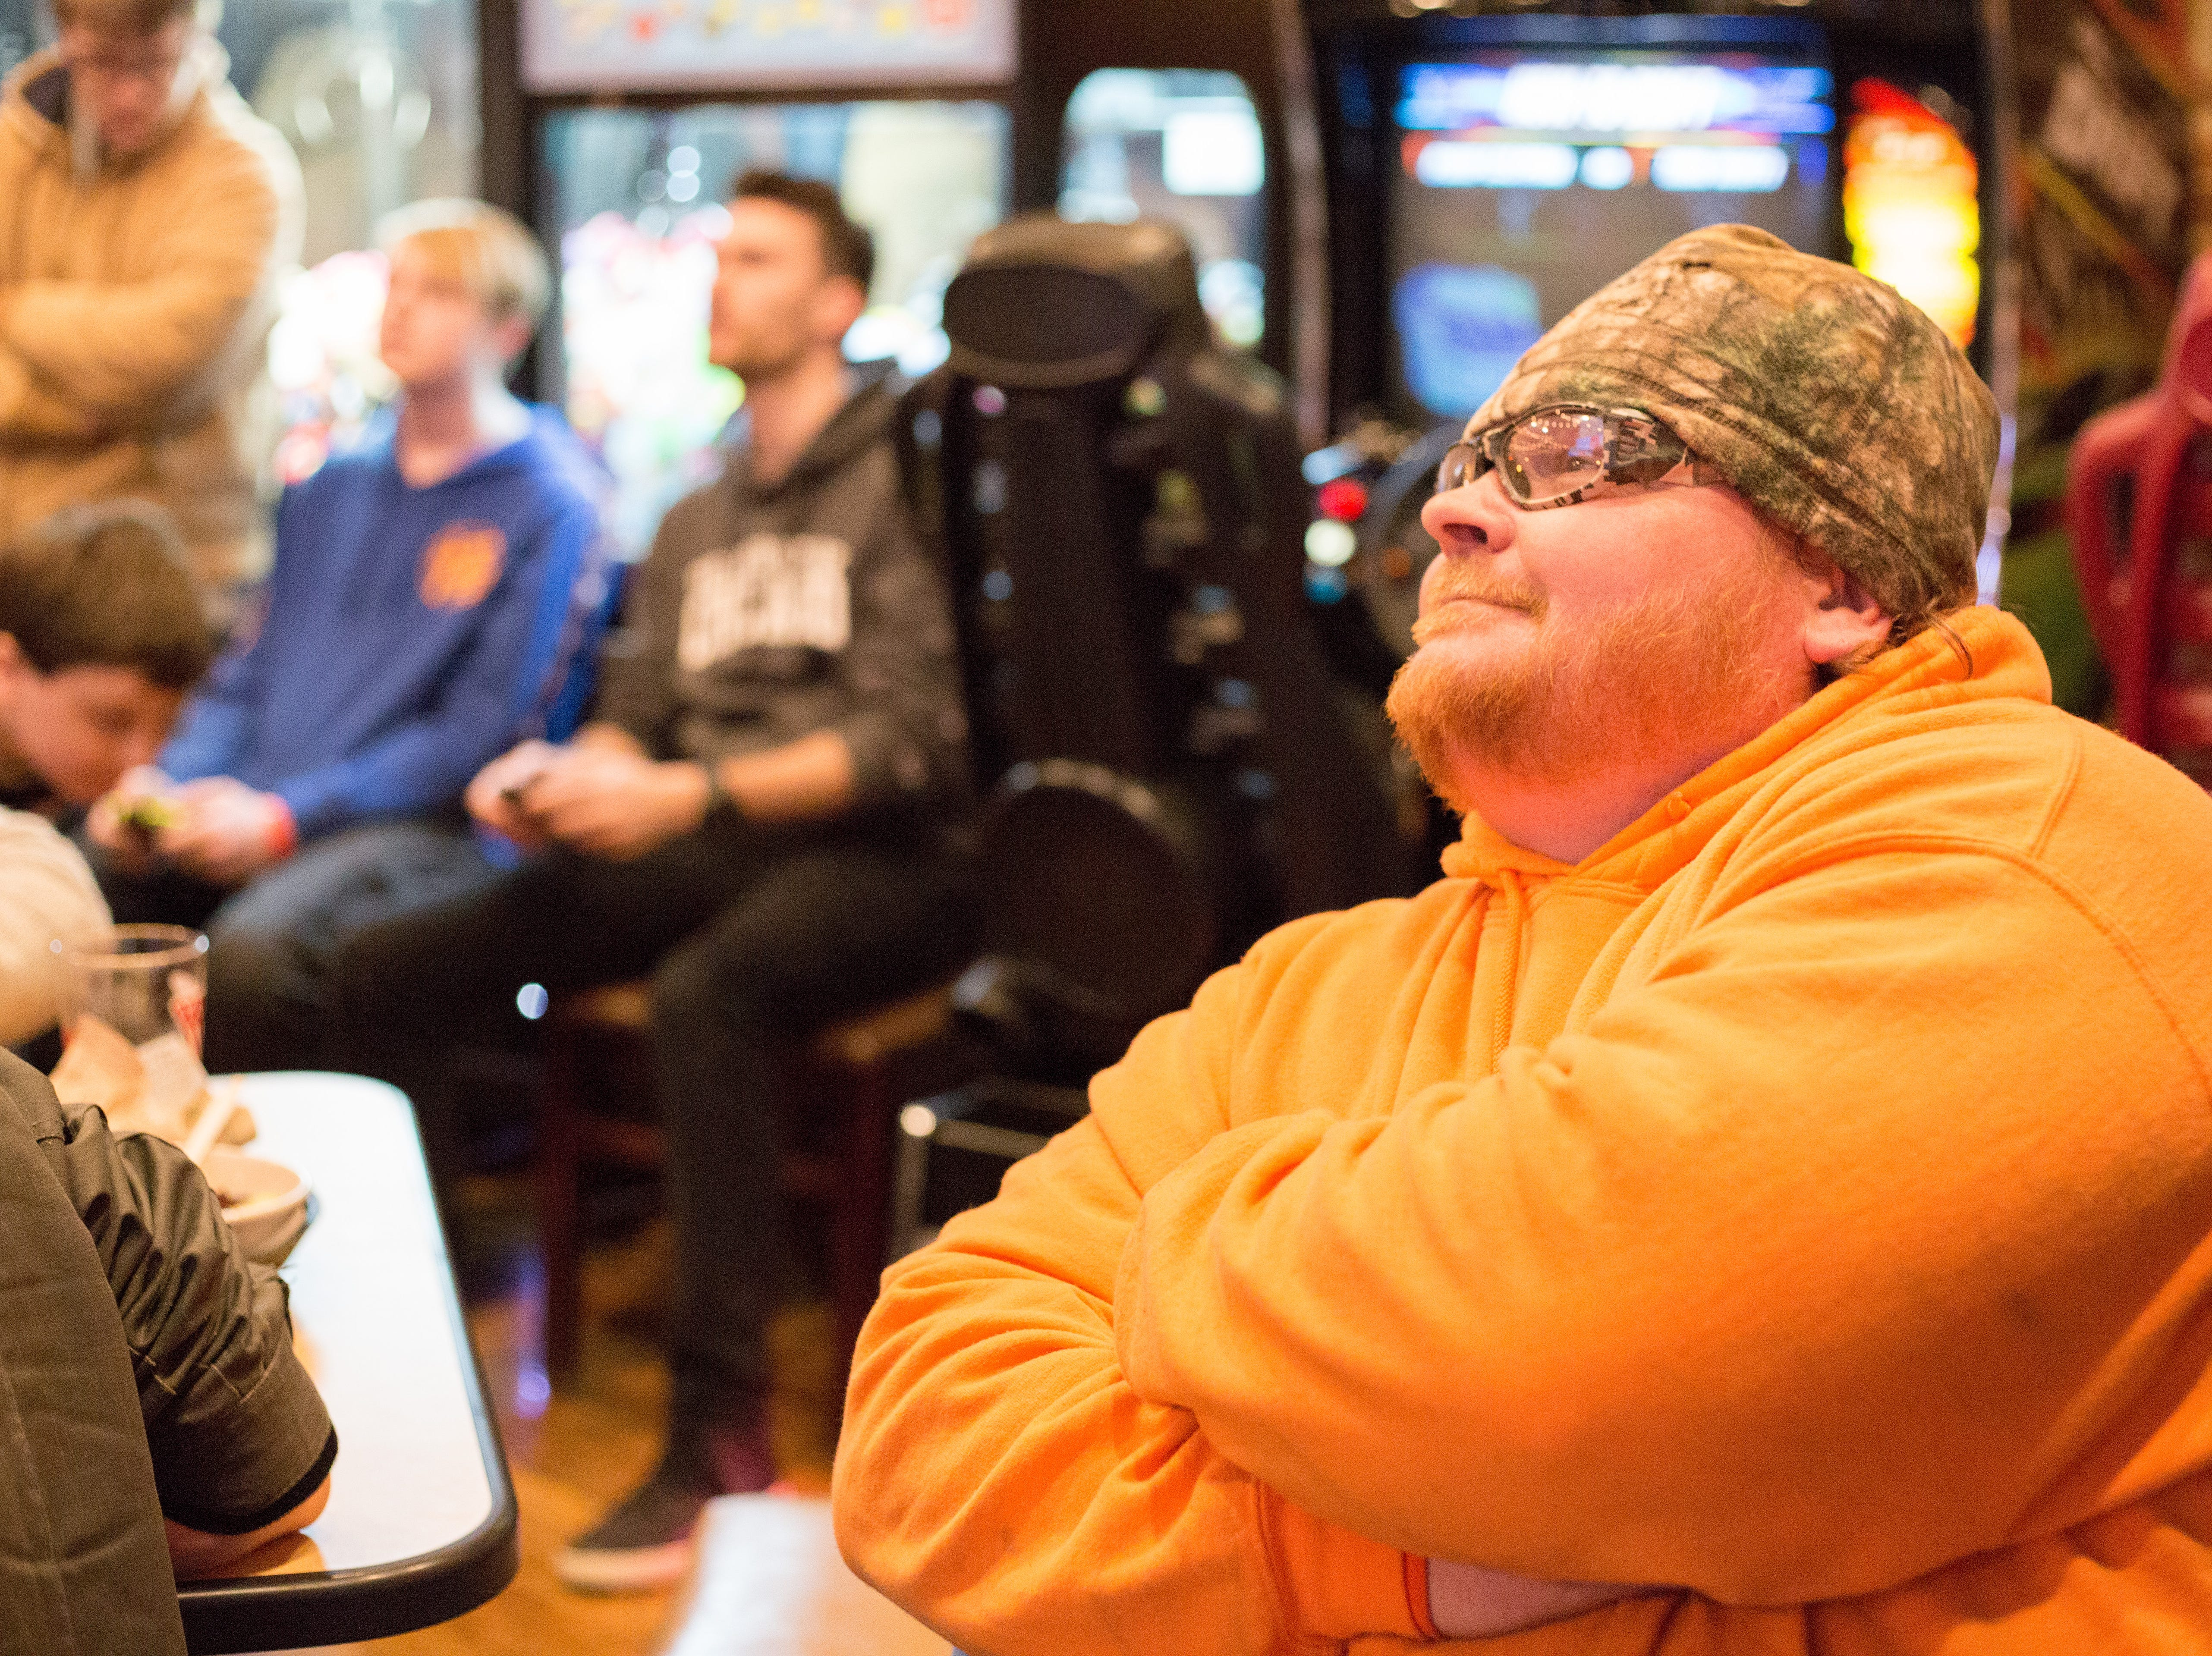 Chuck Williams enjoys watching the Super Smash Brothers Ultimate Tournament presented by Big Dad Games at Filly's Game and Grill in Gallatin on Monday, Jan 14.